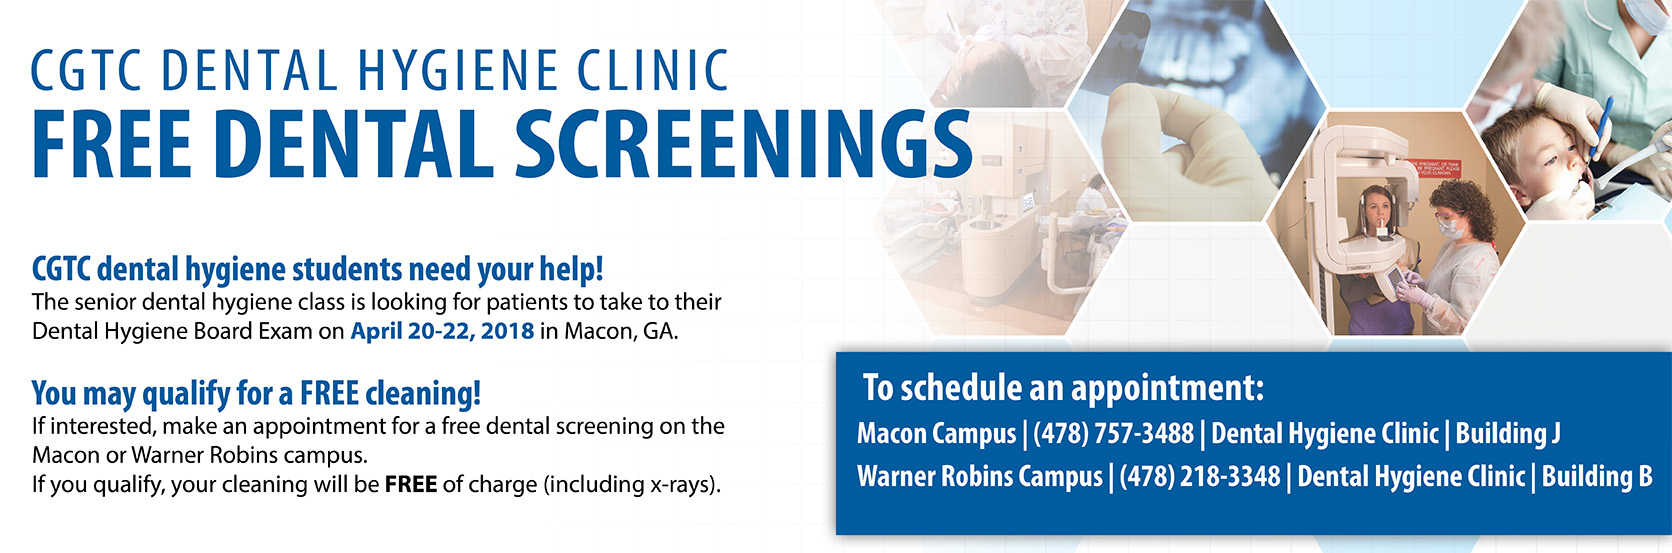 CGTC Dental Hygiene Clinic Free Dental Screenings: CGTC dental hygiene students need your help! The senior dental hygiene class is looking for patients to take their Dental Hygiene Board exam on April 20-22, 2018 in Macon, GA. You may qualify for a FREE cleaning! If interested, make an appointment for a free dental screening on the Macon or Warner Robins campus. If you qualify, your cleaning will be FREE of charge (including x-rays). To schedule an appointment, contact: Macon Campus - 478-757-3488 Building J, or Warner Robins Campus - 478-218-3348 Building B